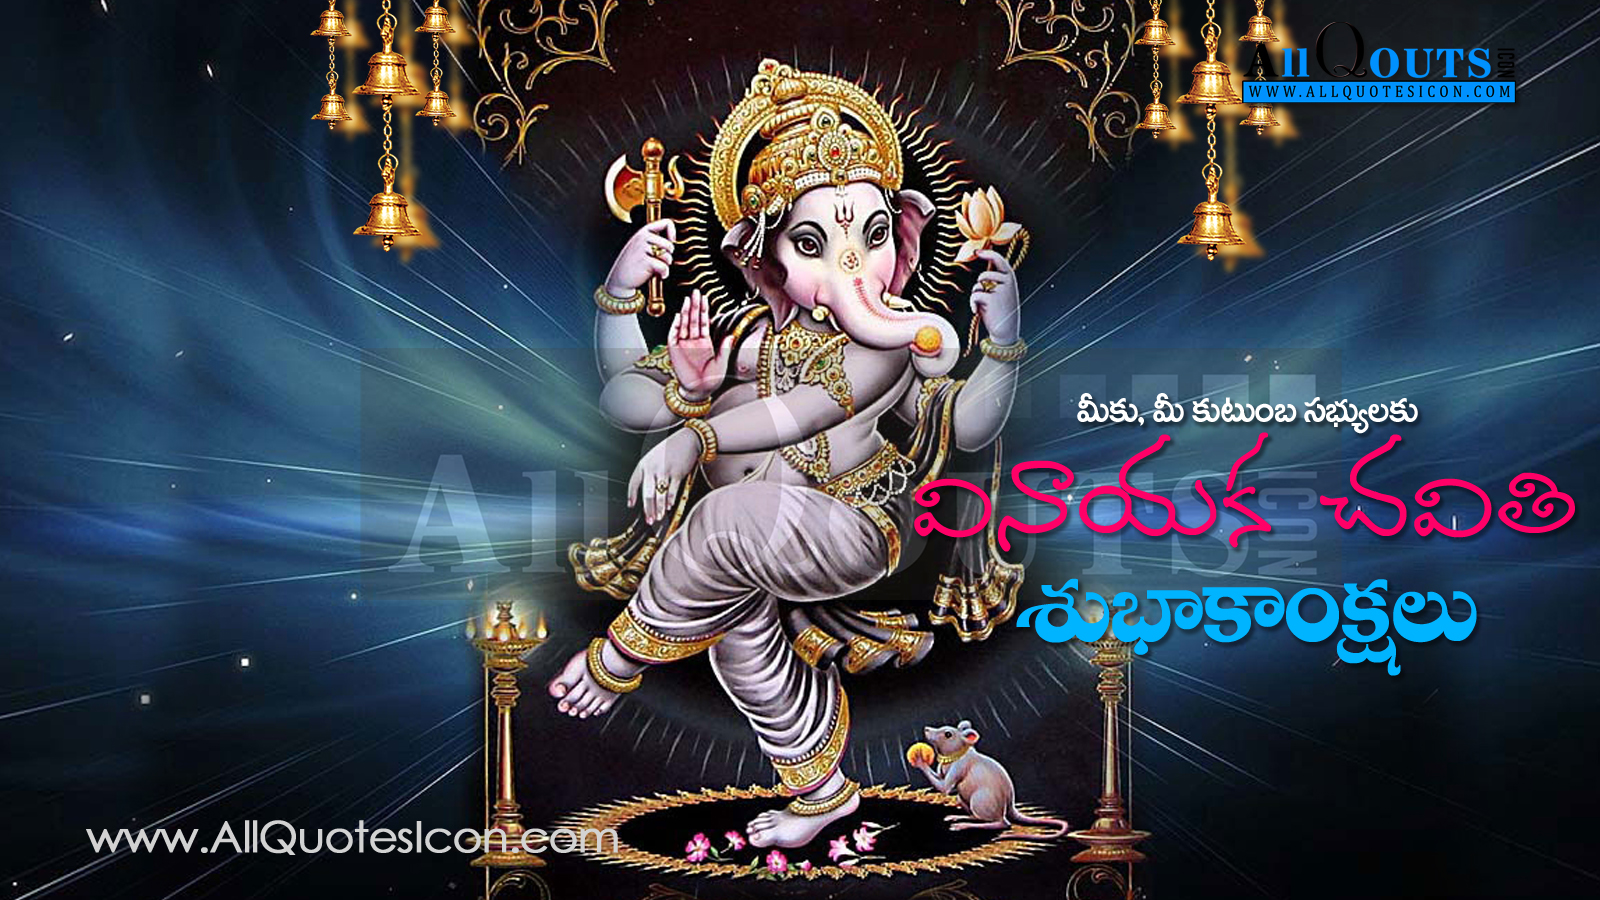 Happy ganesh chaturthi images and greetings in telugu 2015 www here is vinayaka chavithi 2015 wallpapers in telugubest vinayaka chavithi information in telugu m4hsunfo